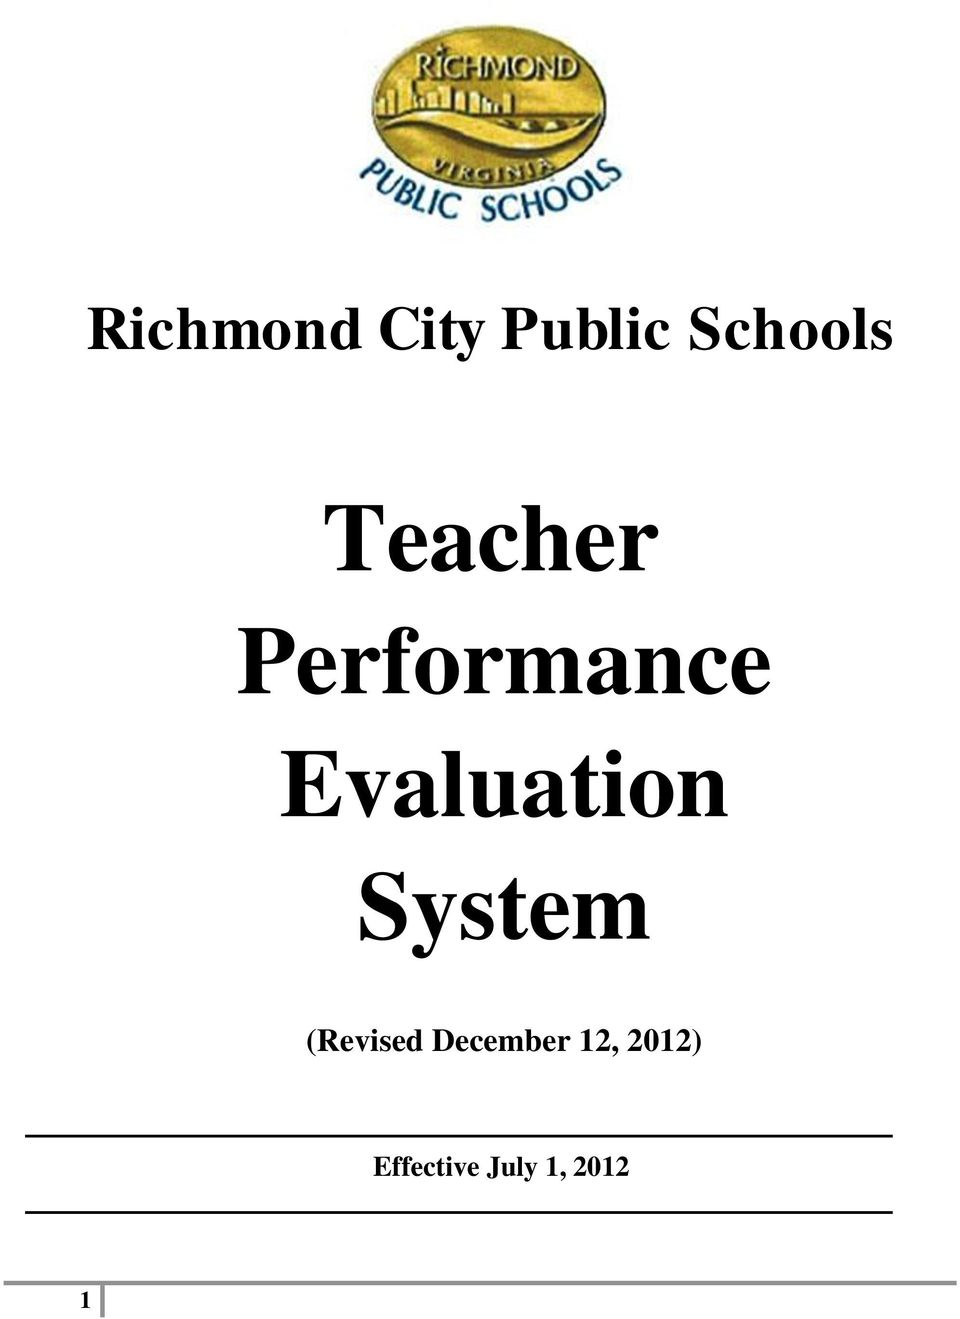 Evaluation System (Revised